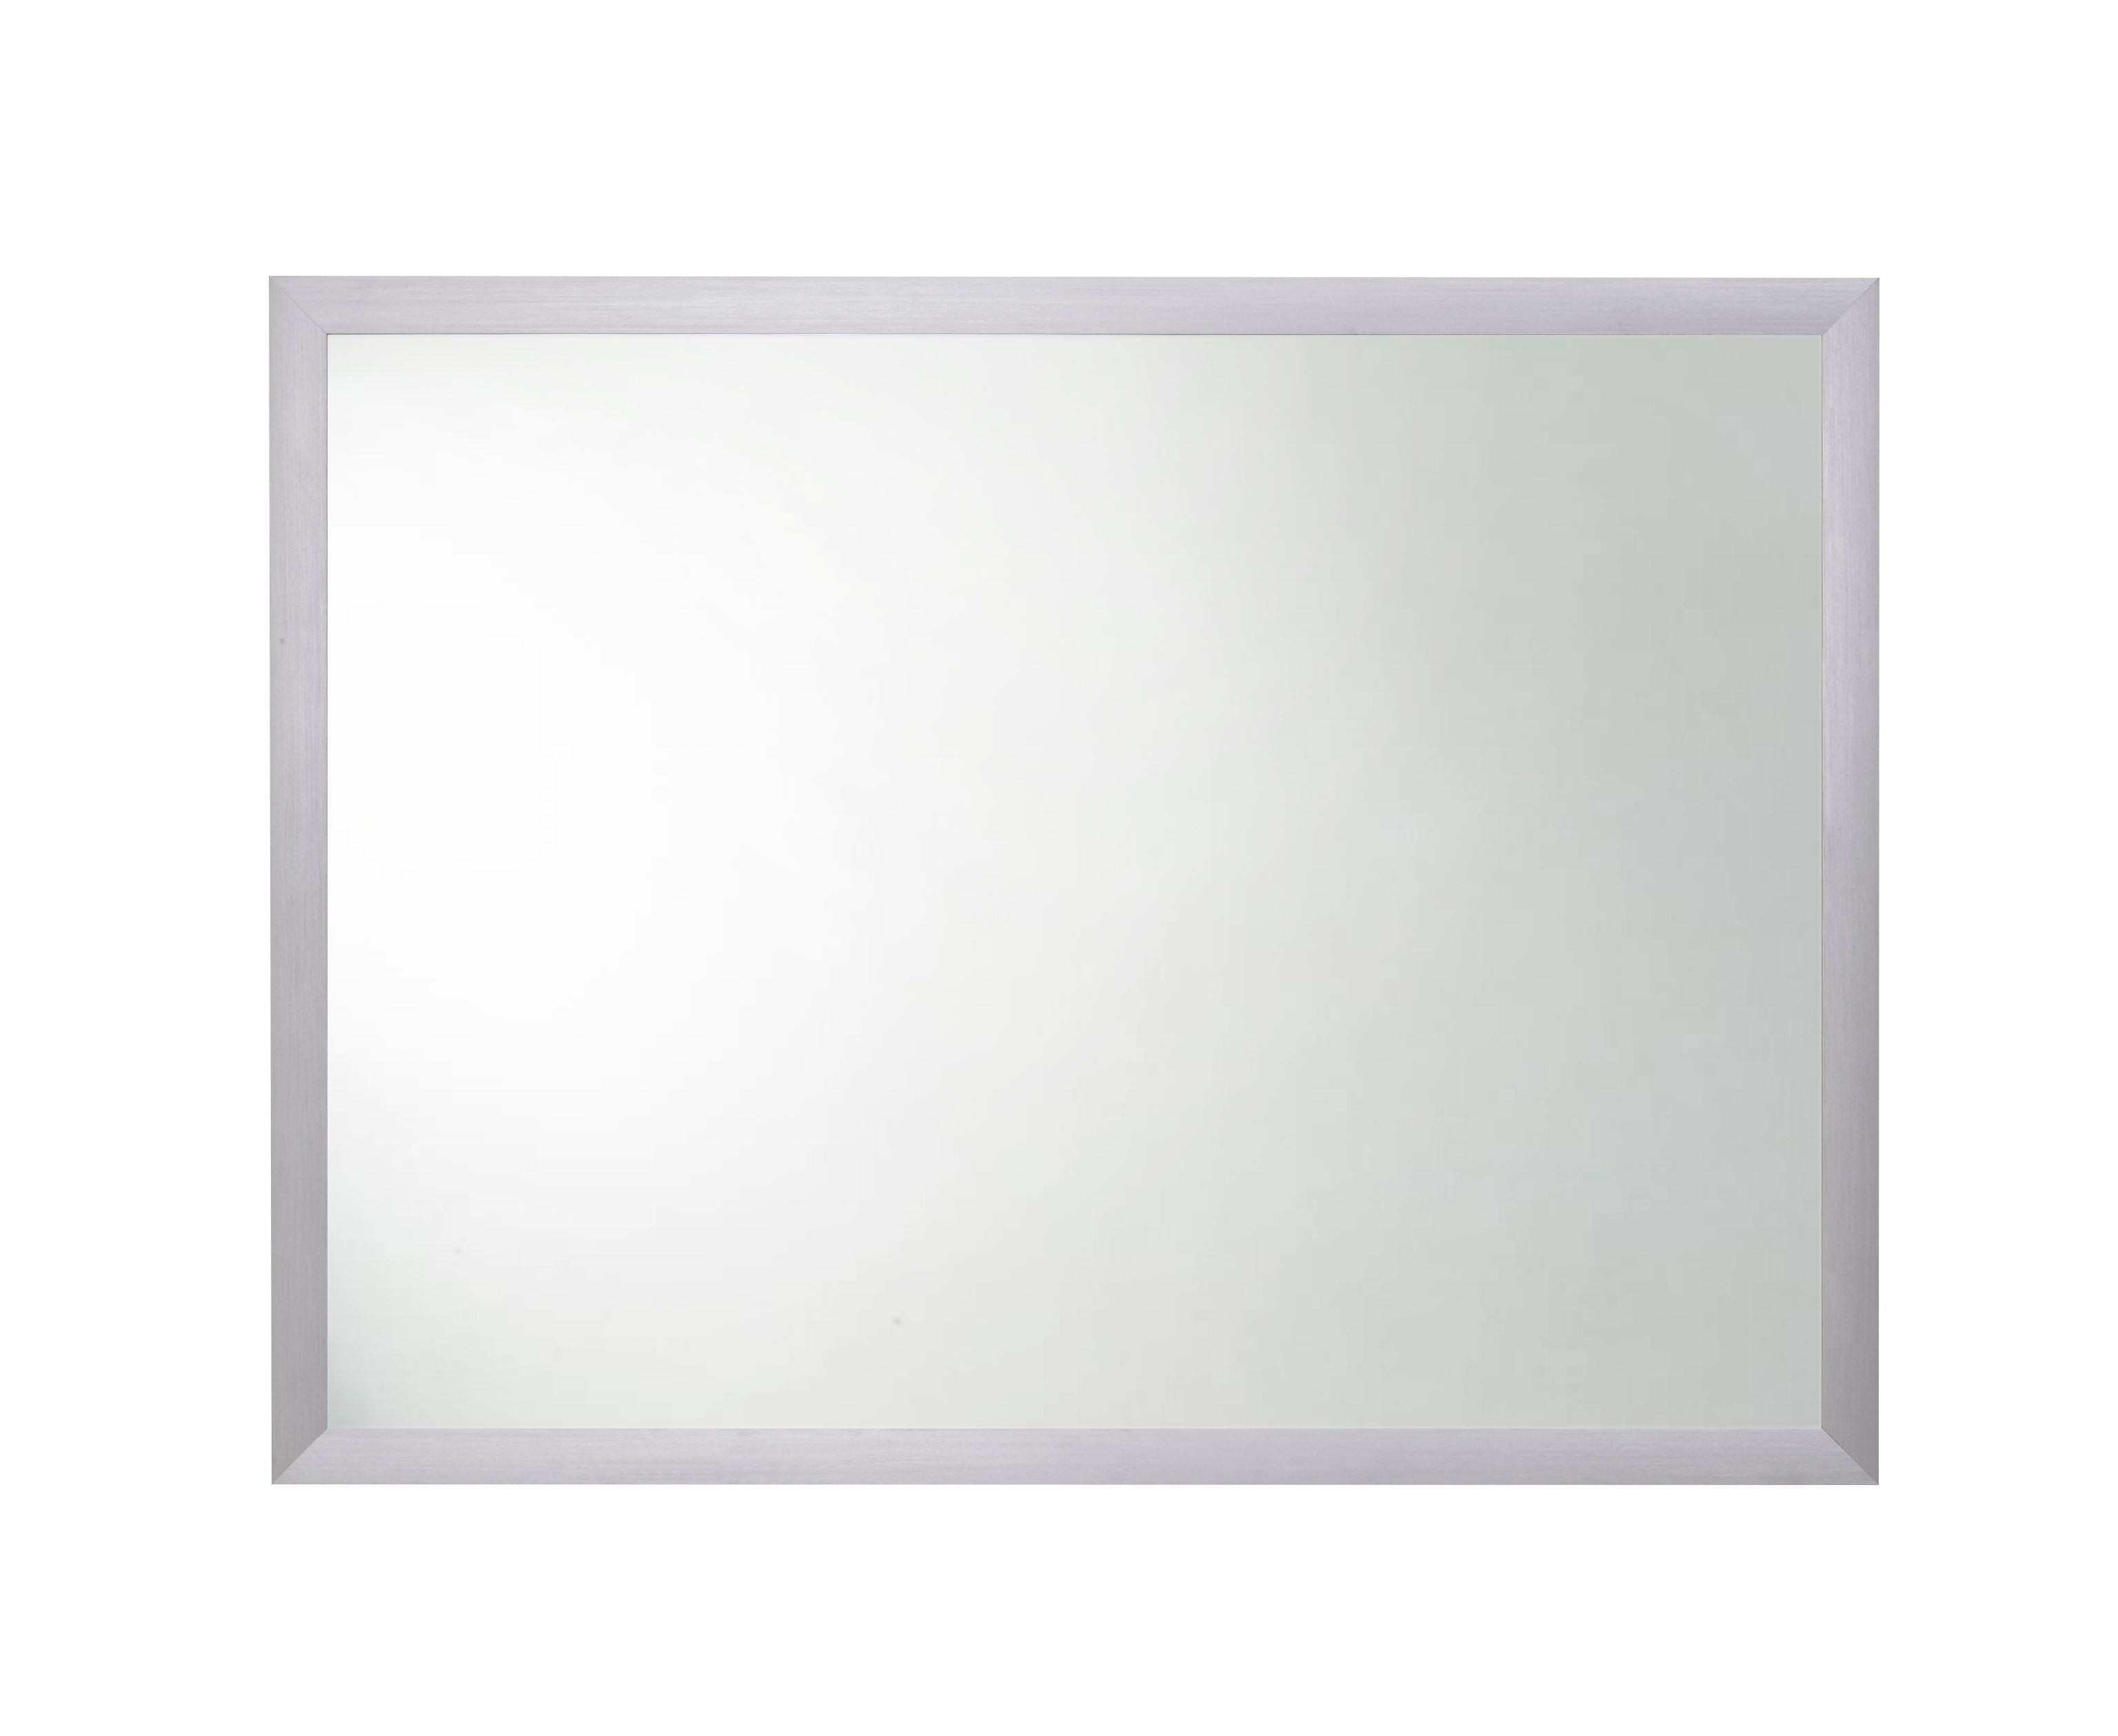 Diy Led Mirror Frame Cooke And Lewis Golspie Rectangular Framed Mirror W 600mm